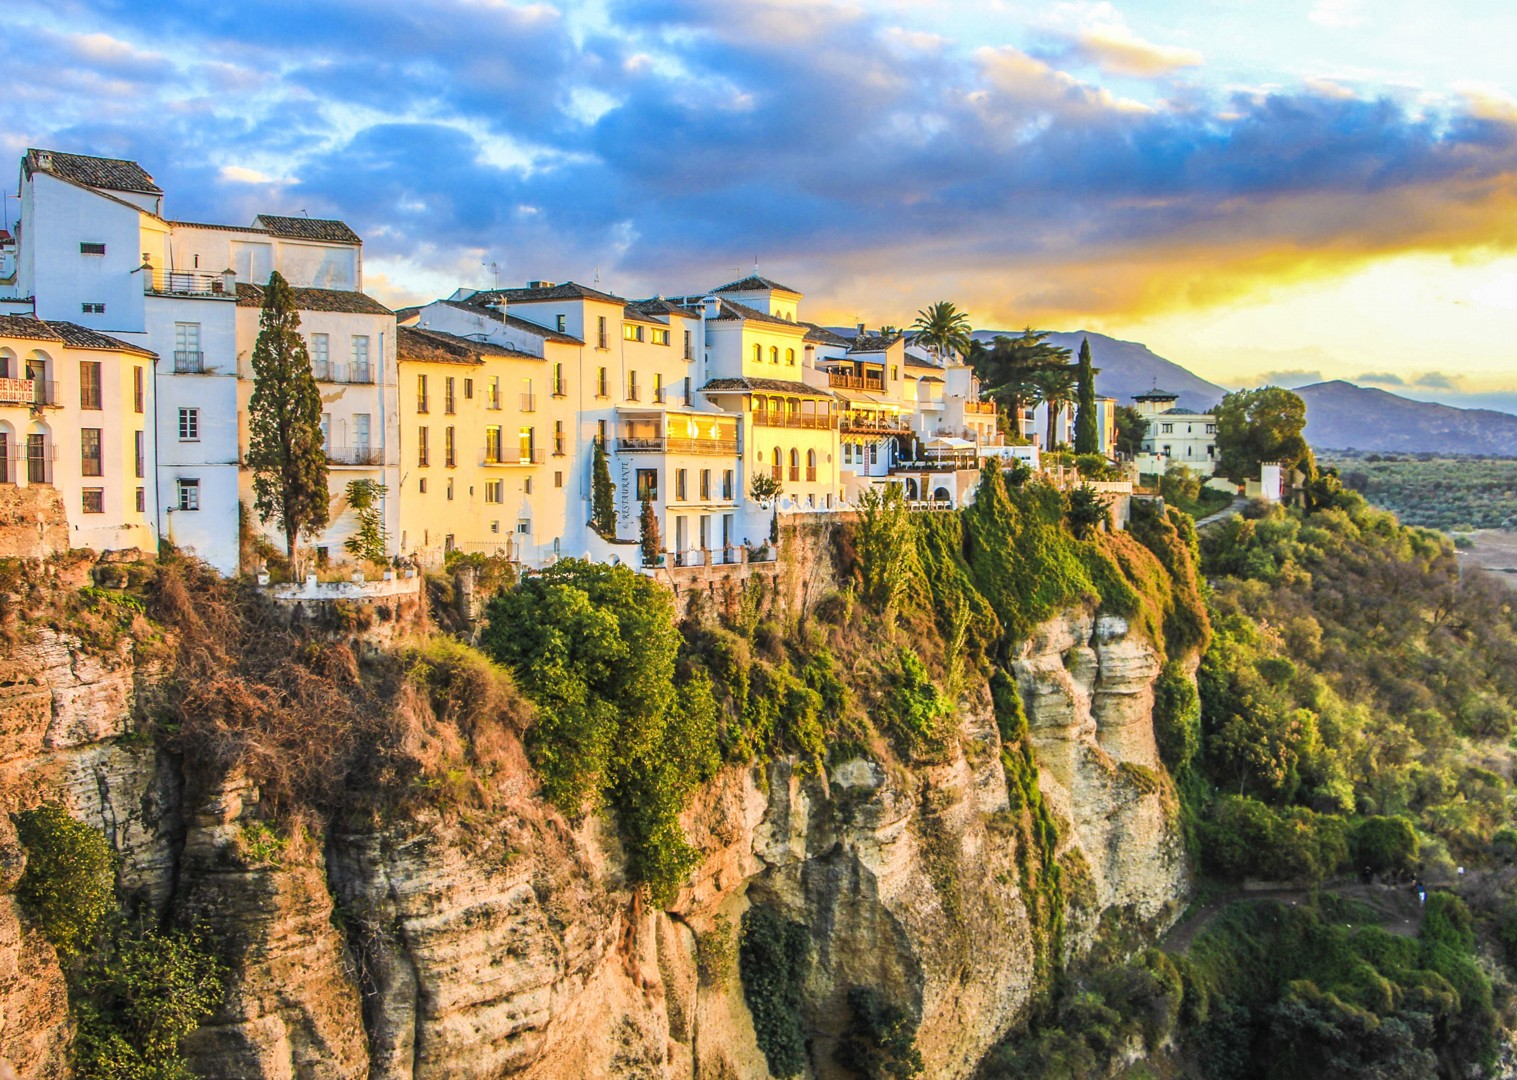 puente-nuevo-spain-cycling-tour-skedaddle.jpg - Southern Spain - Roads of Ronda - Guided Road Cycling Holiday - Road Cycling